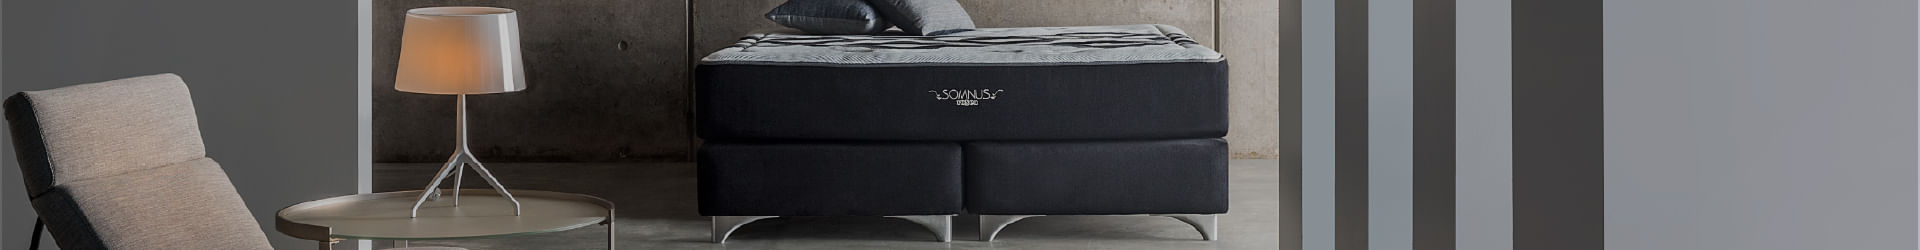 cama box spring king y queen